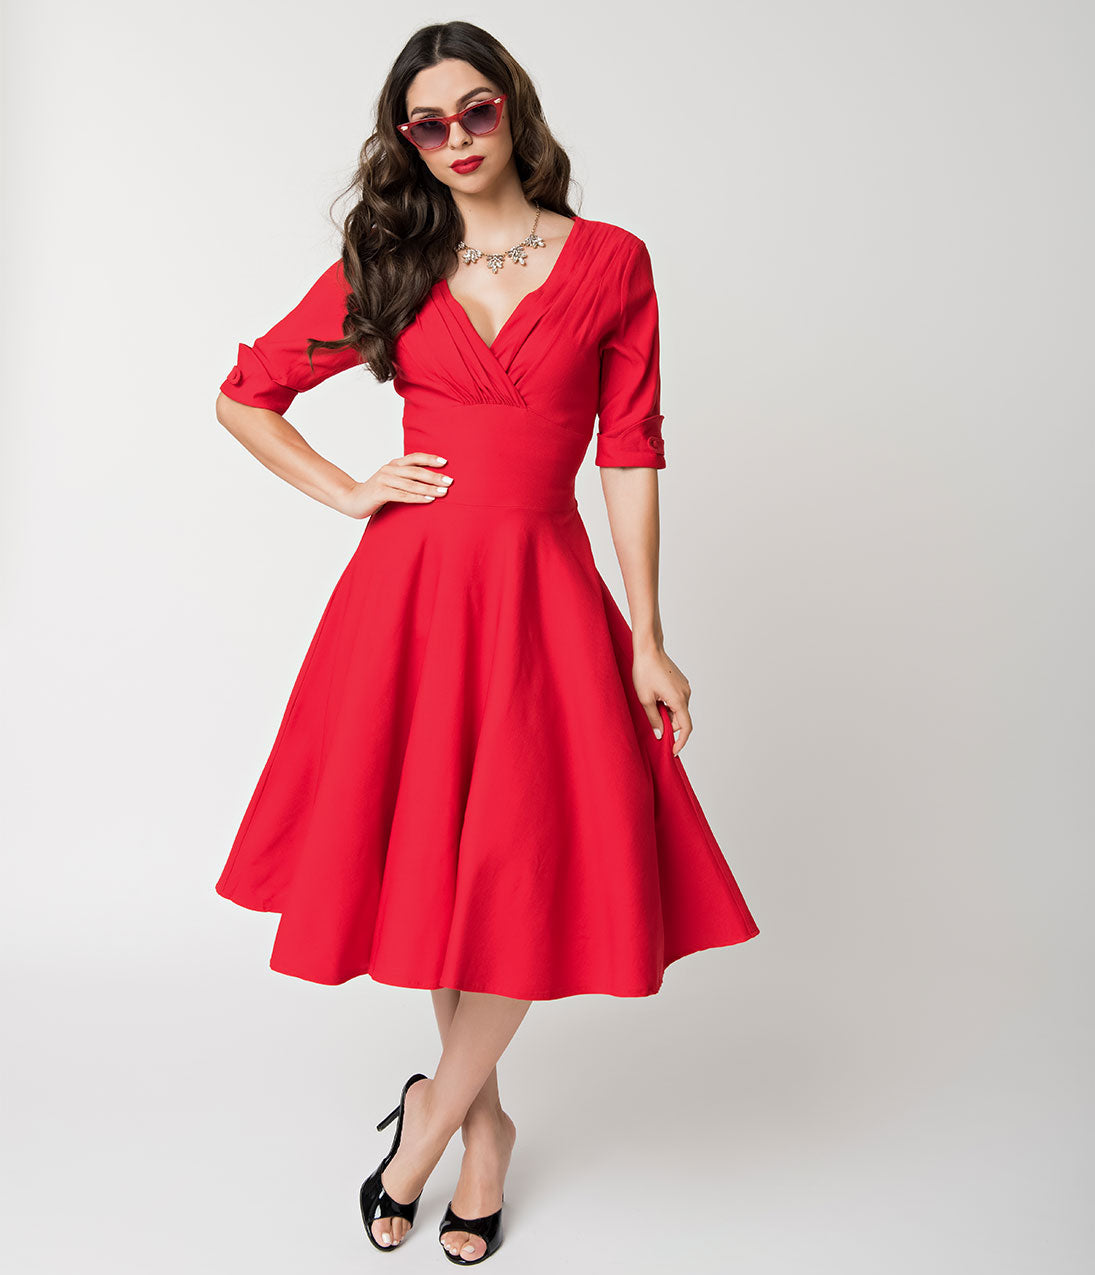 1950s Dresses, 50s Dresses | 1950s Style Dresses Unique Vintage 1950S Red Delores Swing Dress With Sleeves $88.00 AT vintagedancer.com